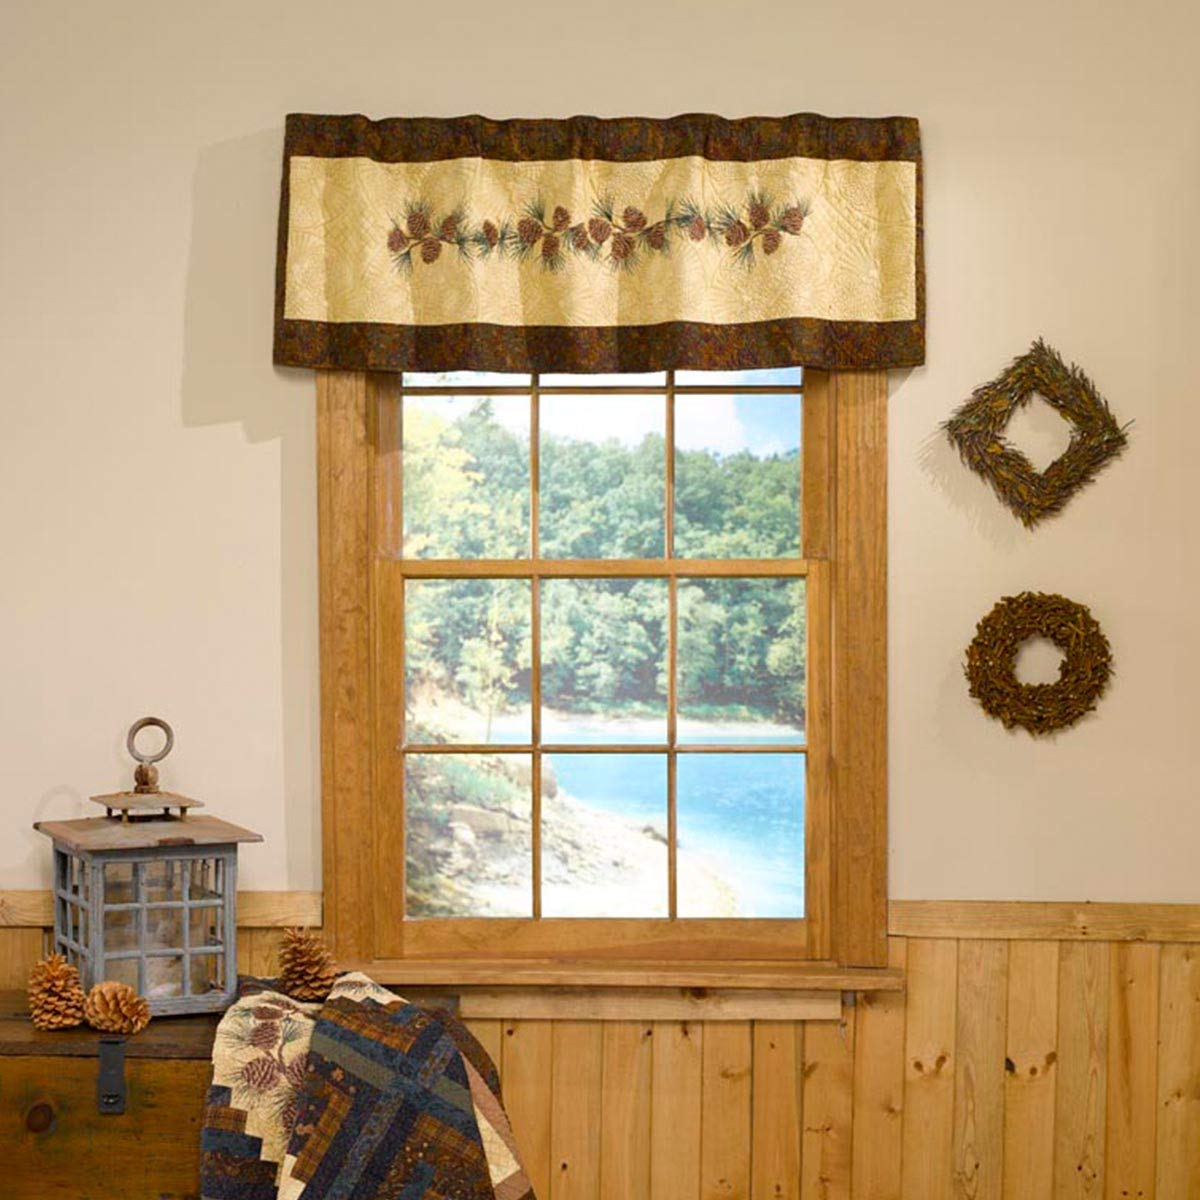 Valance - Cabin Raising Pine Cone by Donna Sharp - Lodge Decorative Window Treatment with Pine Cone Pattern by Donna Sharp